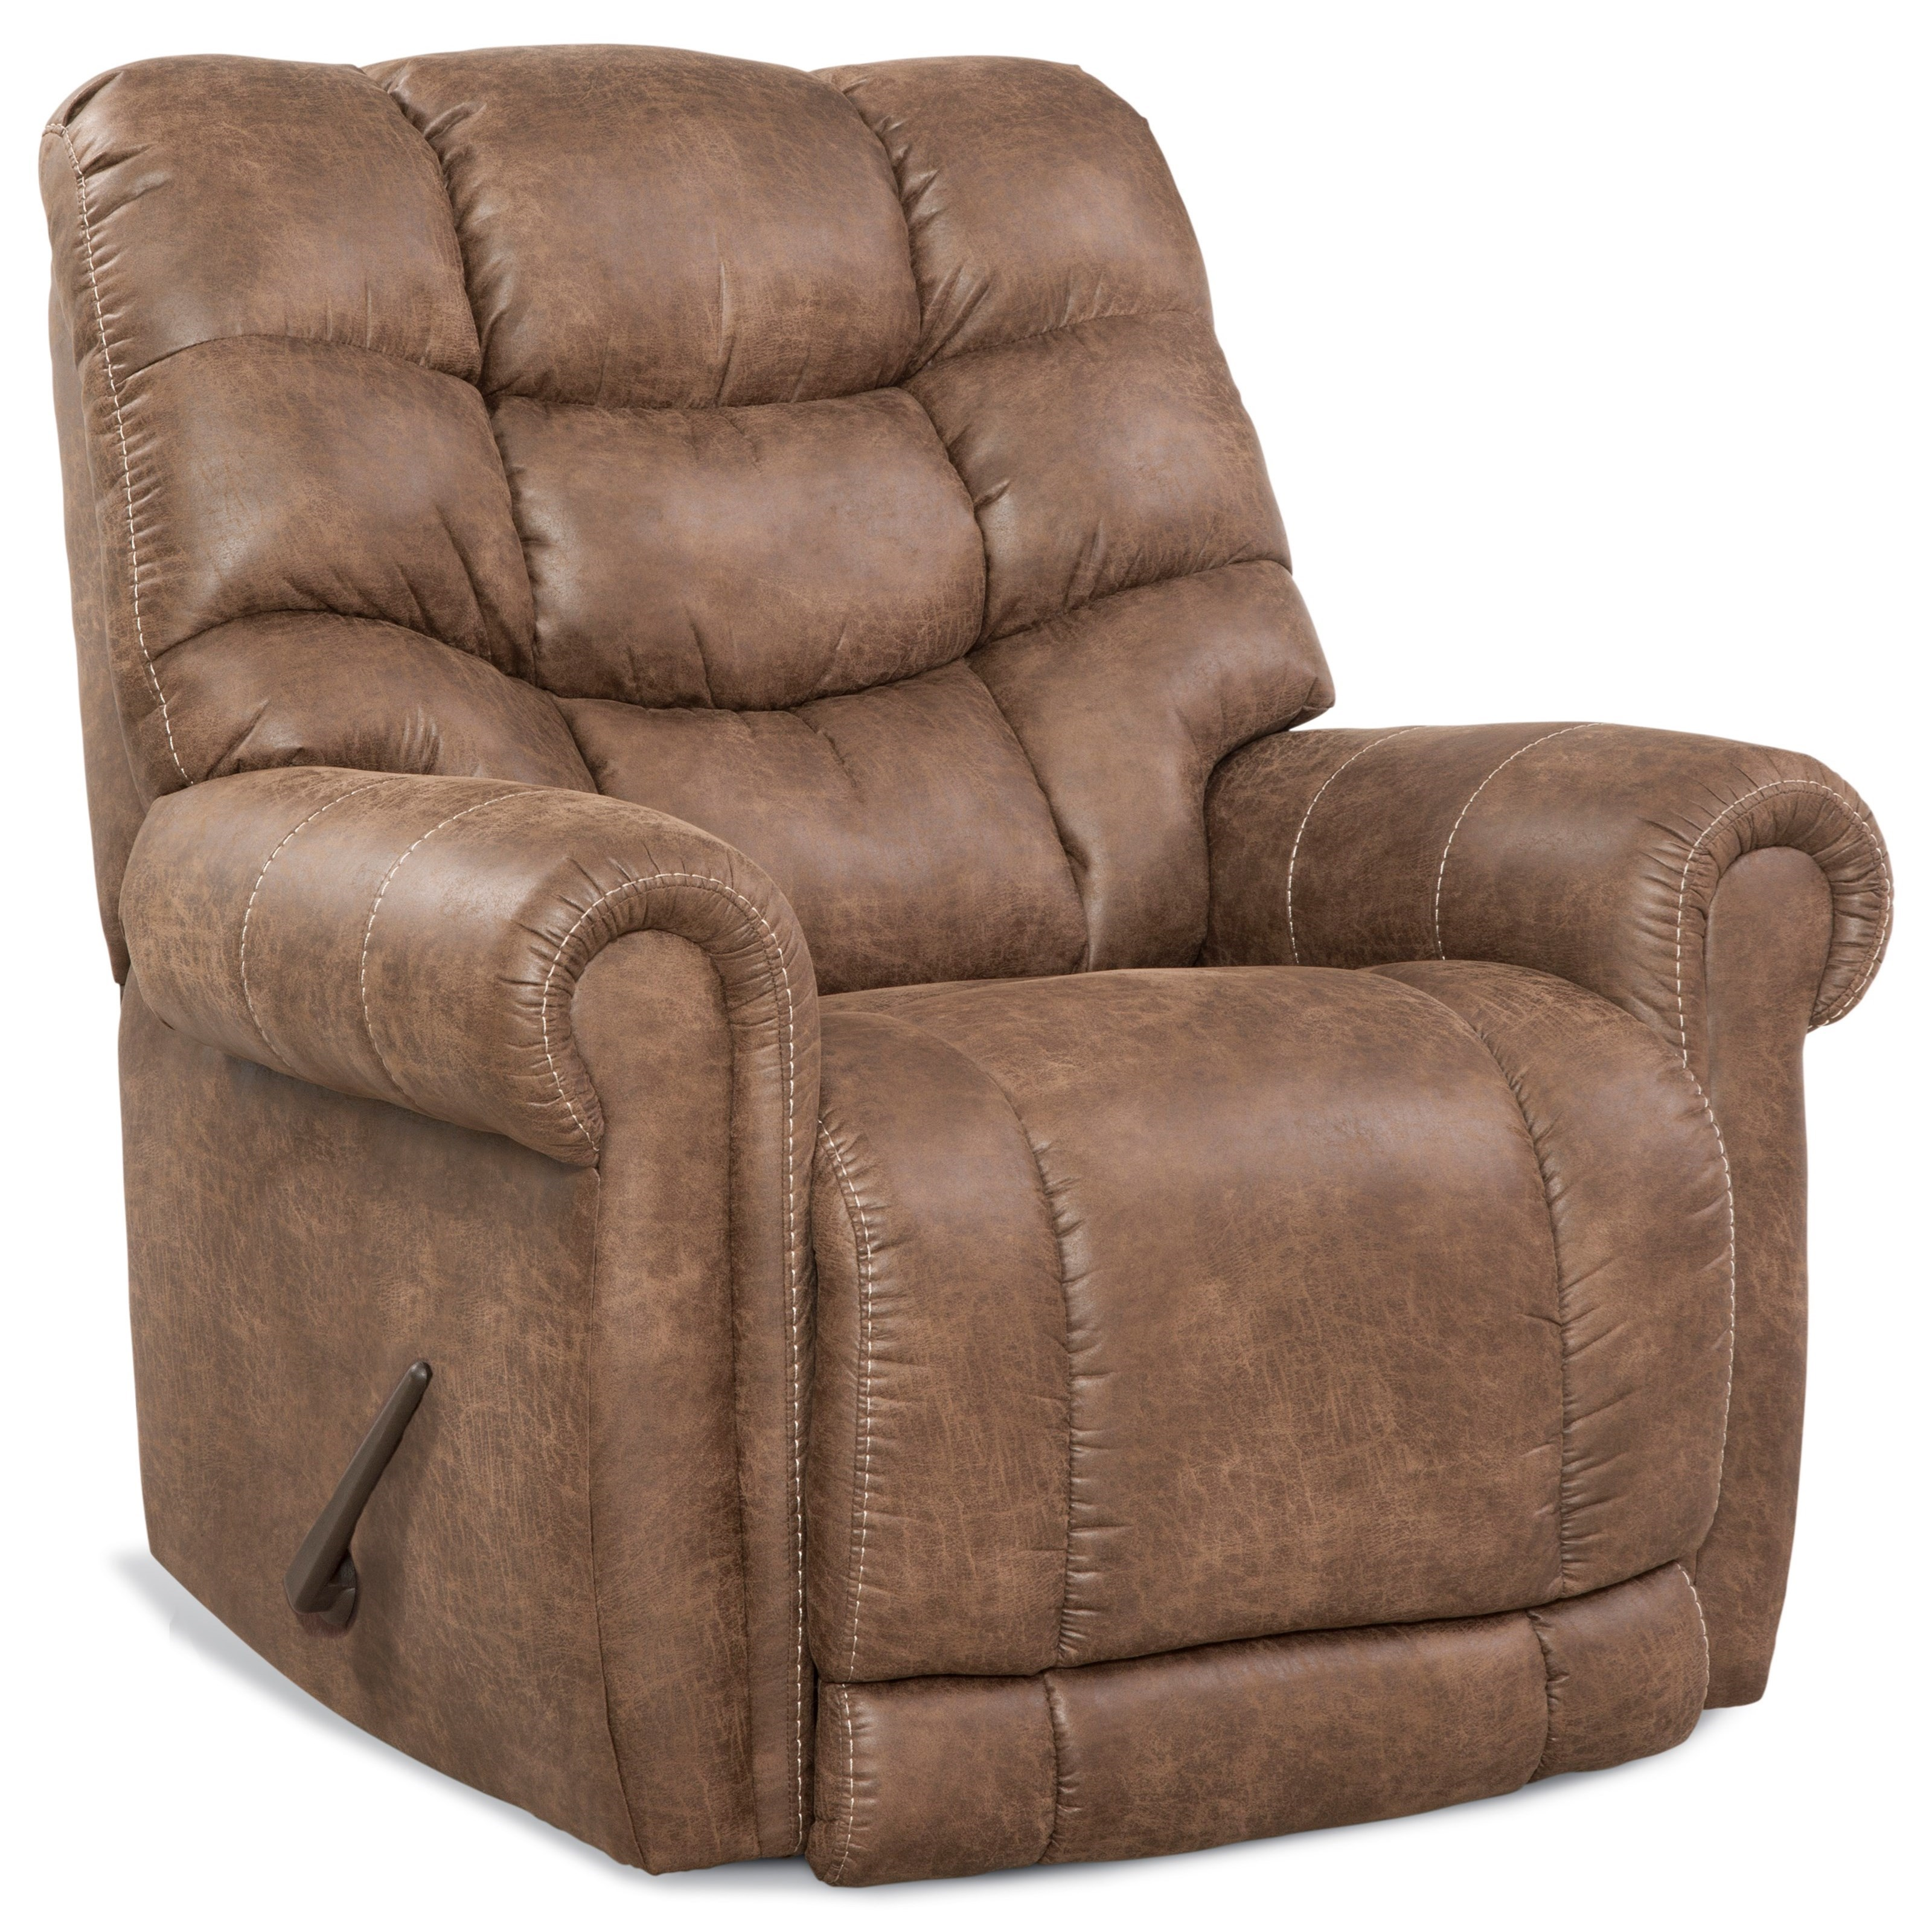 motorized wide recliners chair best and reclining brothers trim big recliner with tall smith man